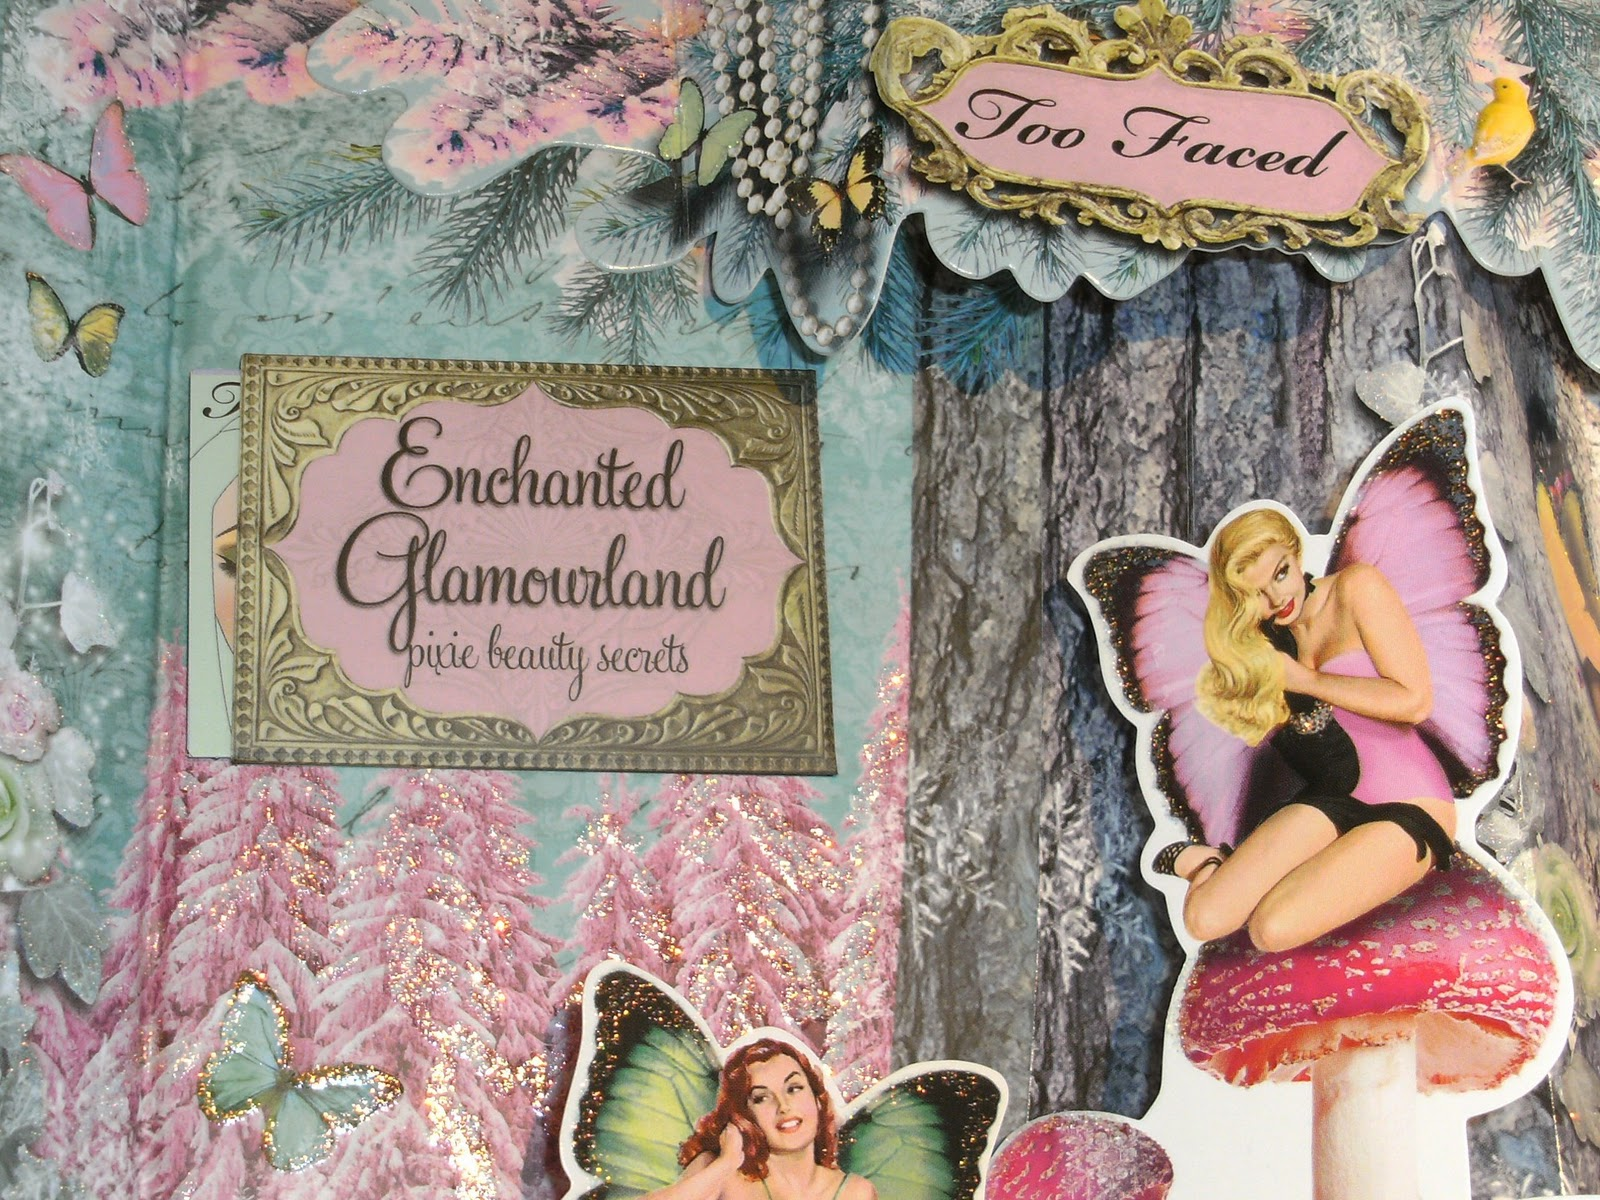 Too Faced Enchanted Glamourland Review & Swatches   Swatch